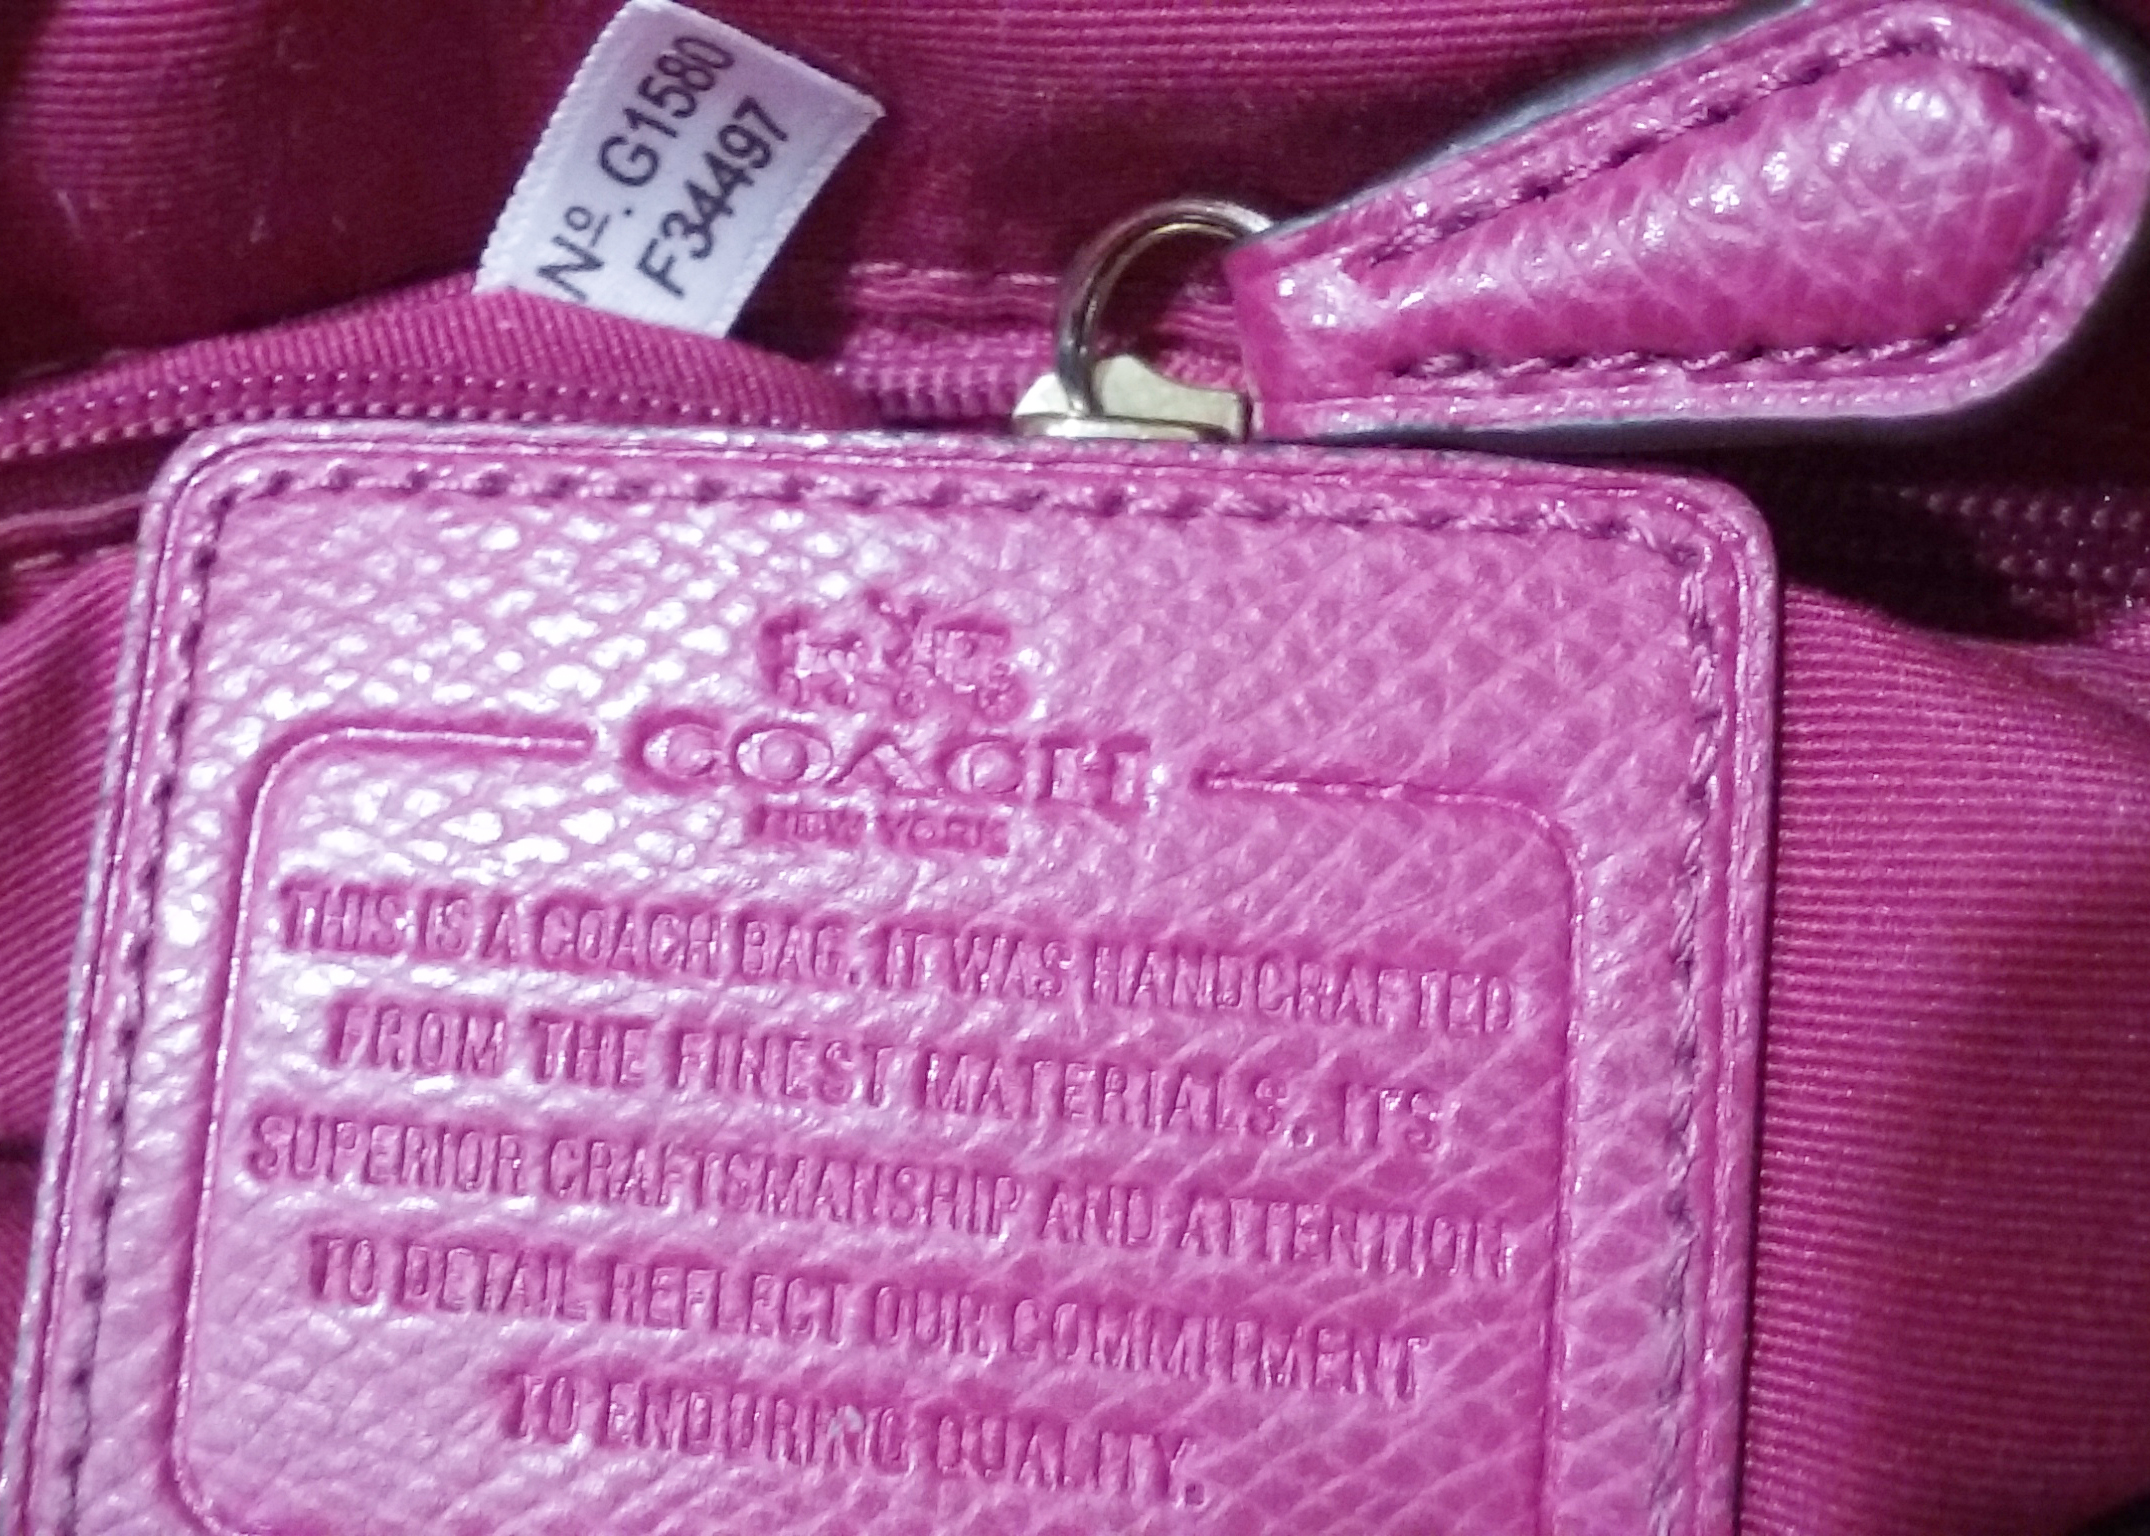 Coach Purse Serial Numbers  42ad1810501d3